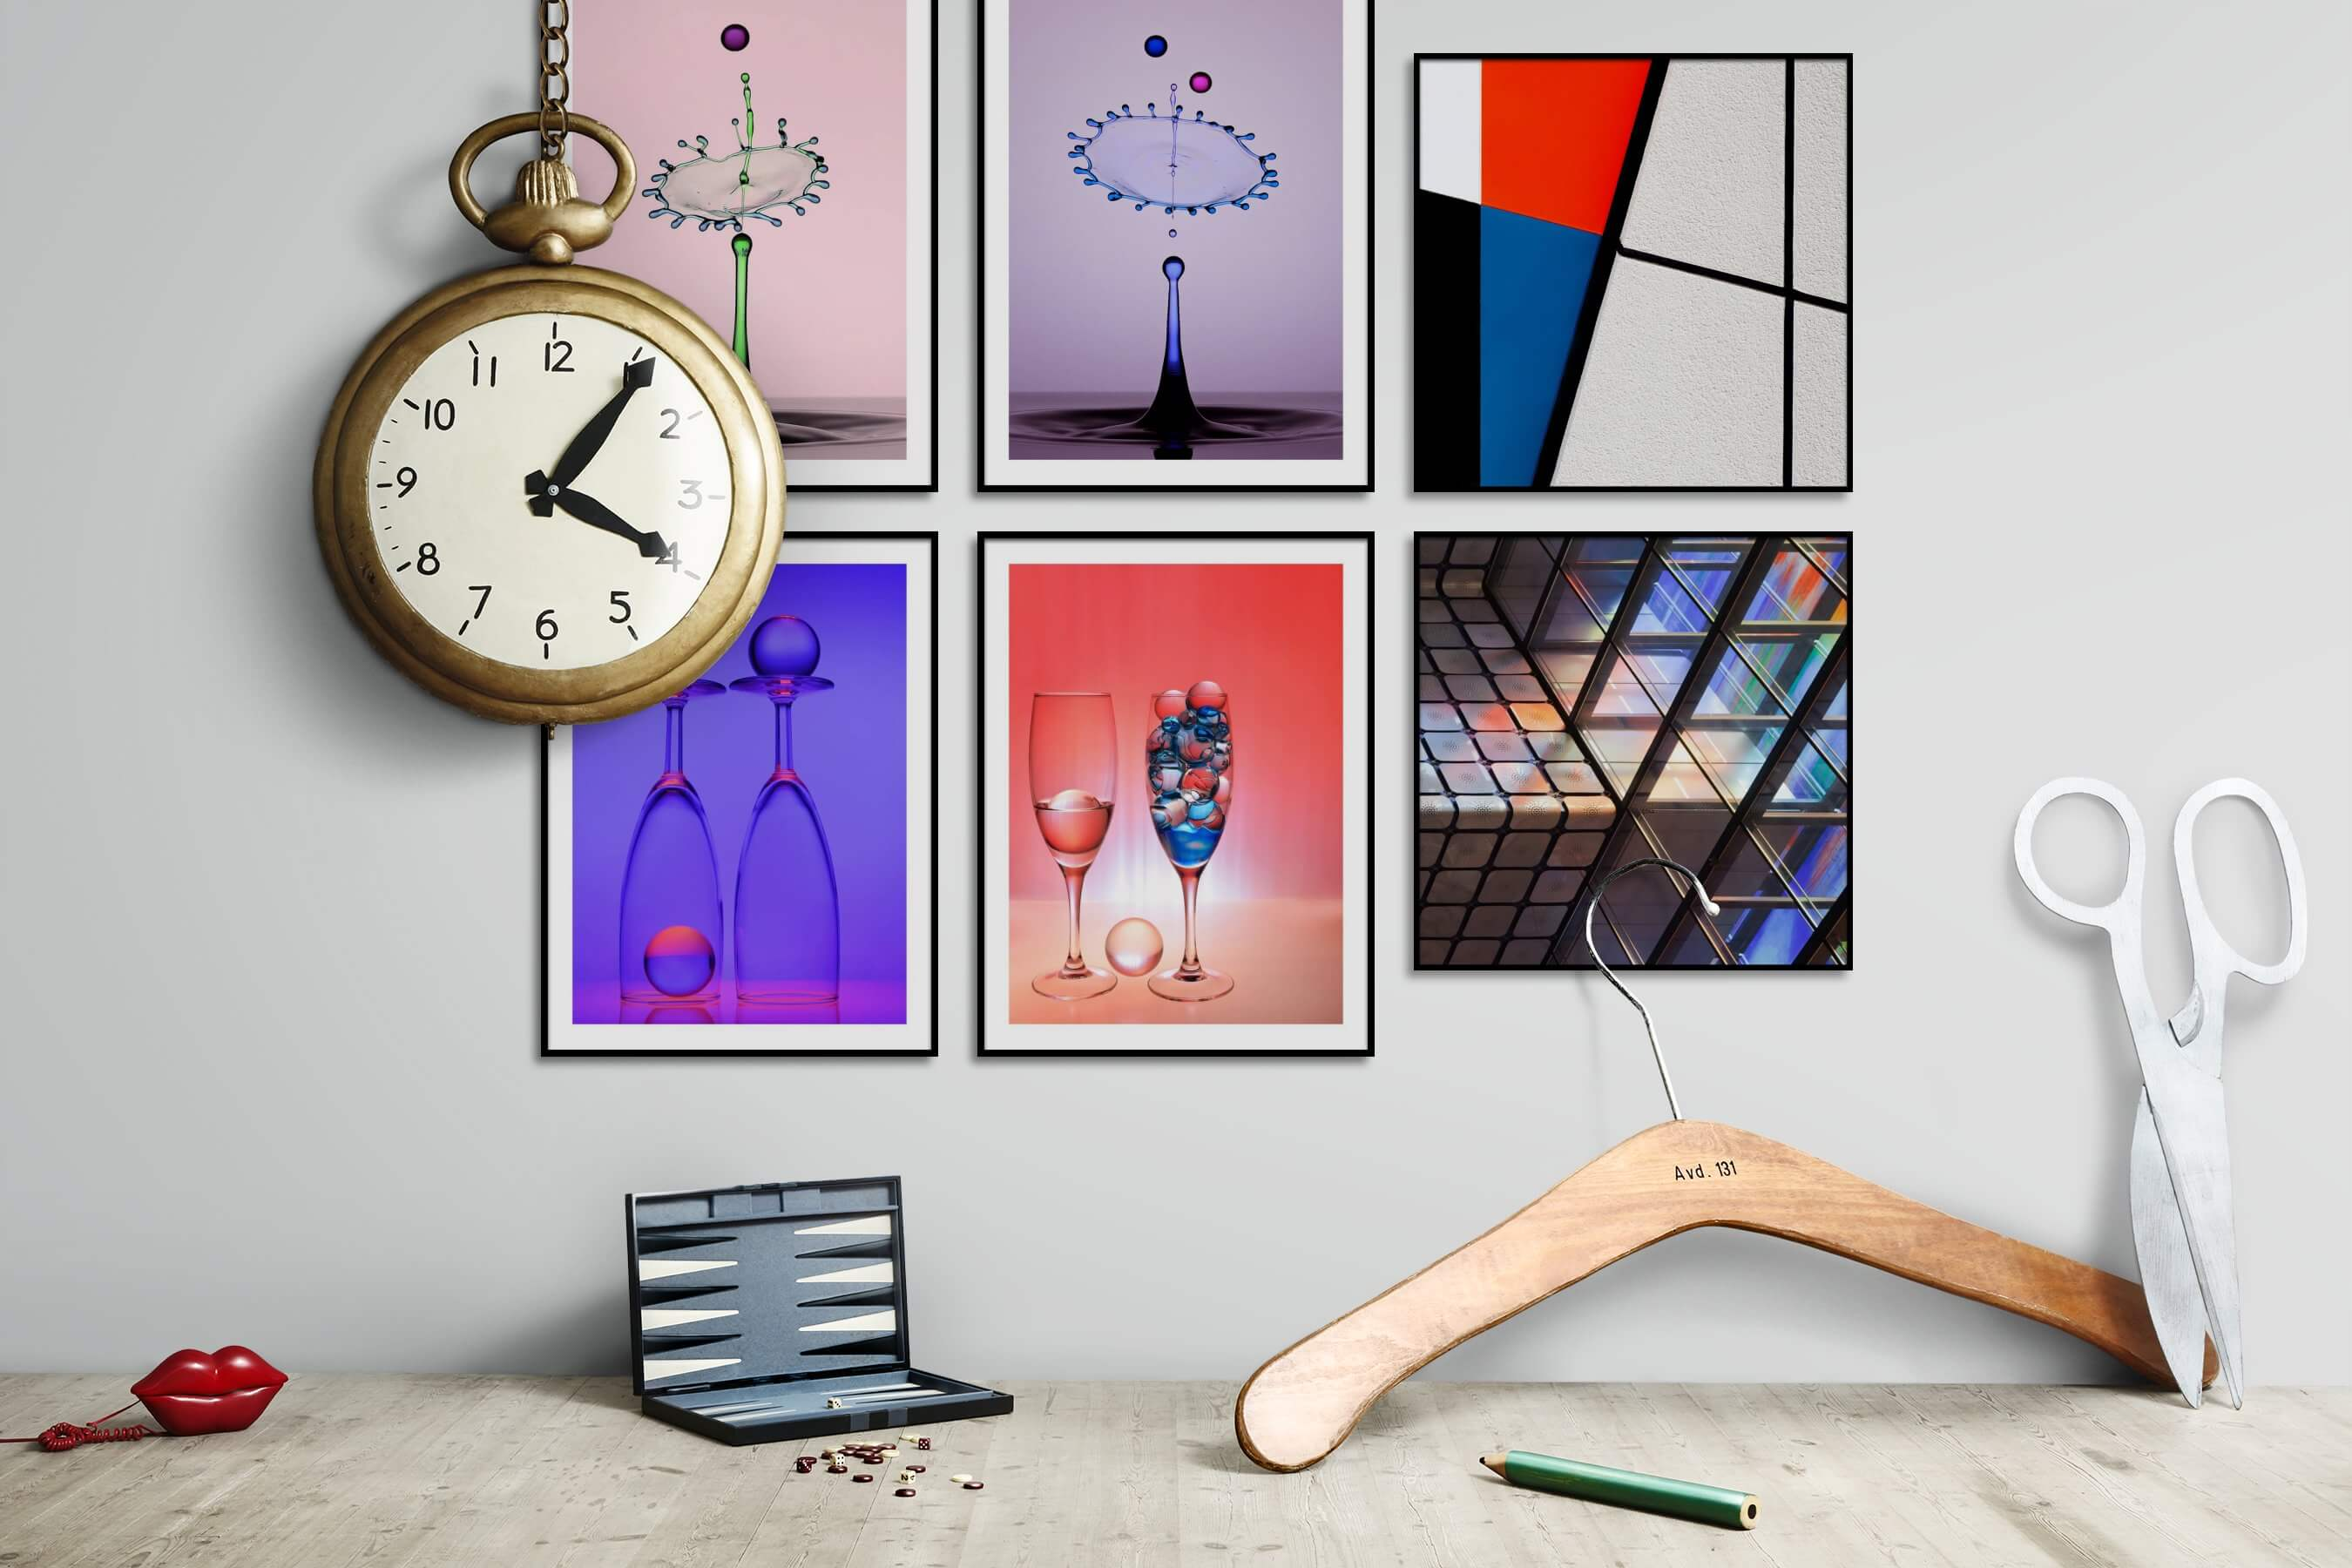 Gallery wall idea with six framed pictures arranged on a wall depicting For the Minimalist, Colorful, For the Moderate, and For the Maximalist